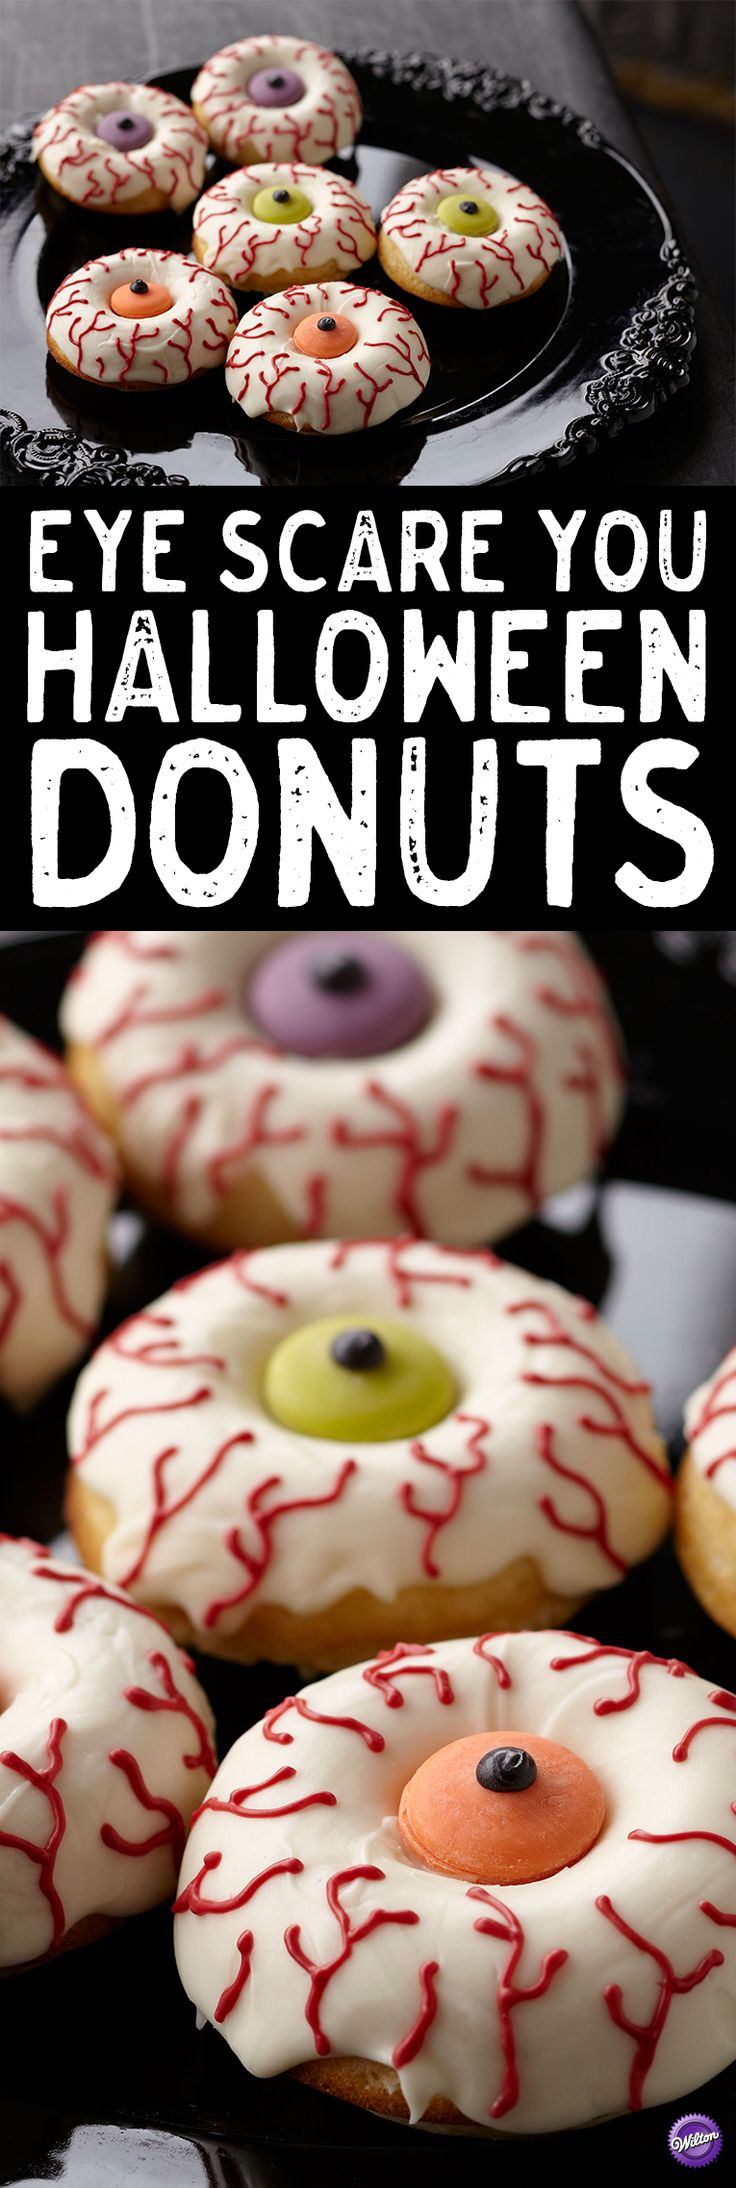 eye scare you halloween donuts wake up your halloween celebration with candy topped doughnuts - Halloween Bakery Ideas